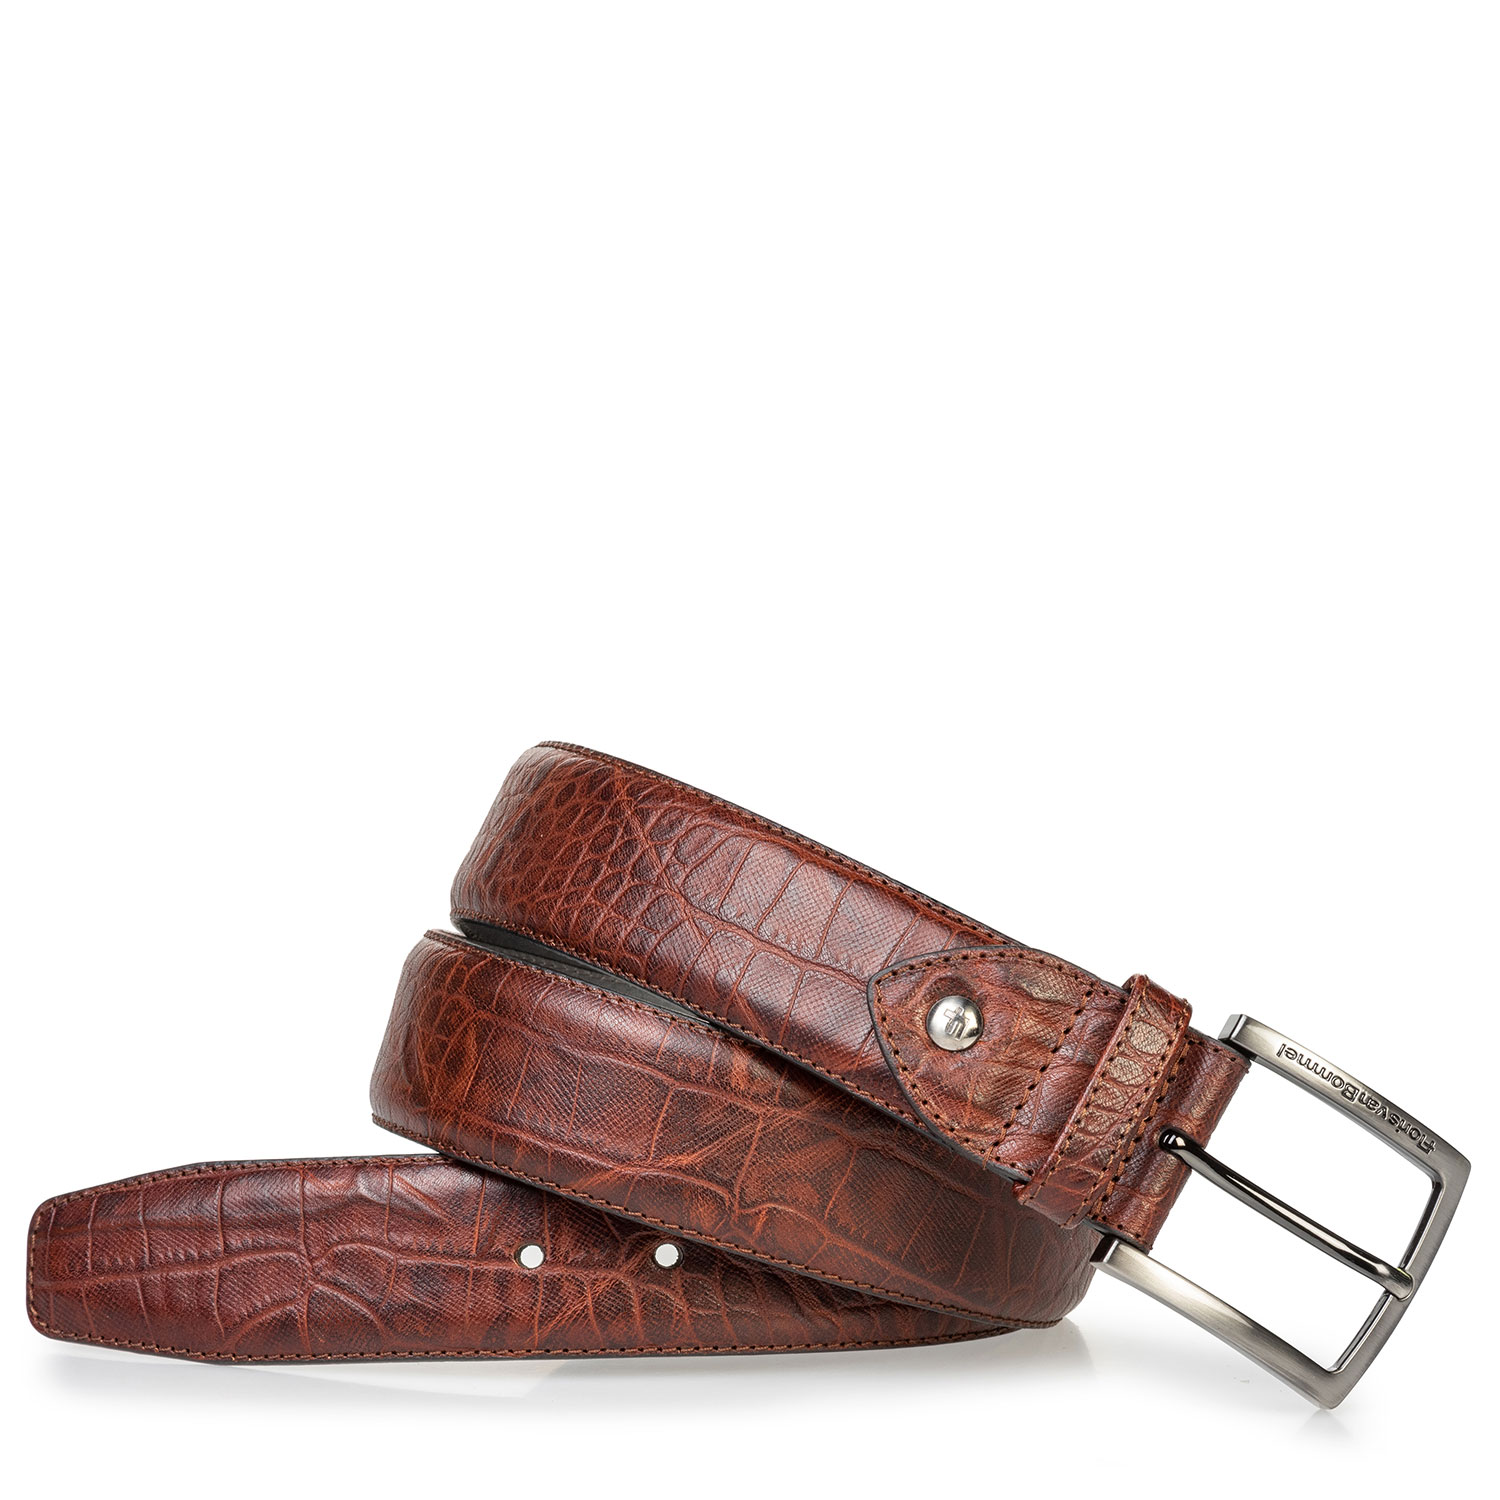 75202/67 - Leather belt croco print cognac